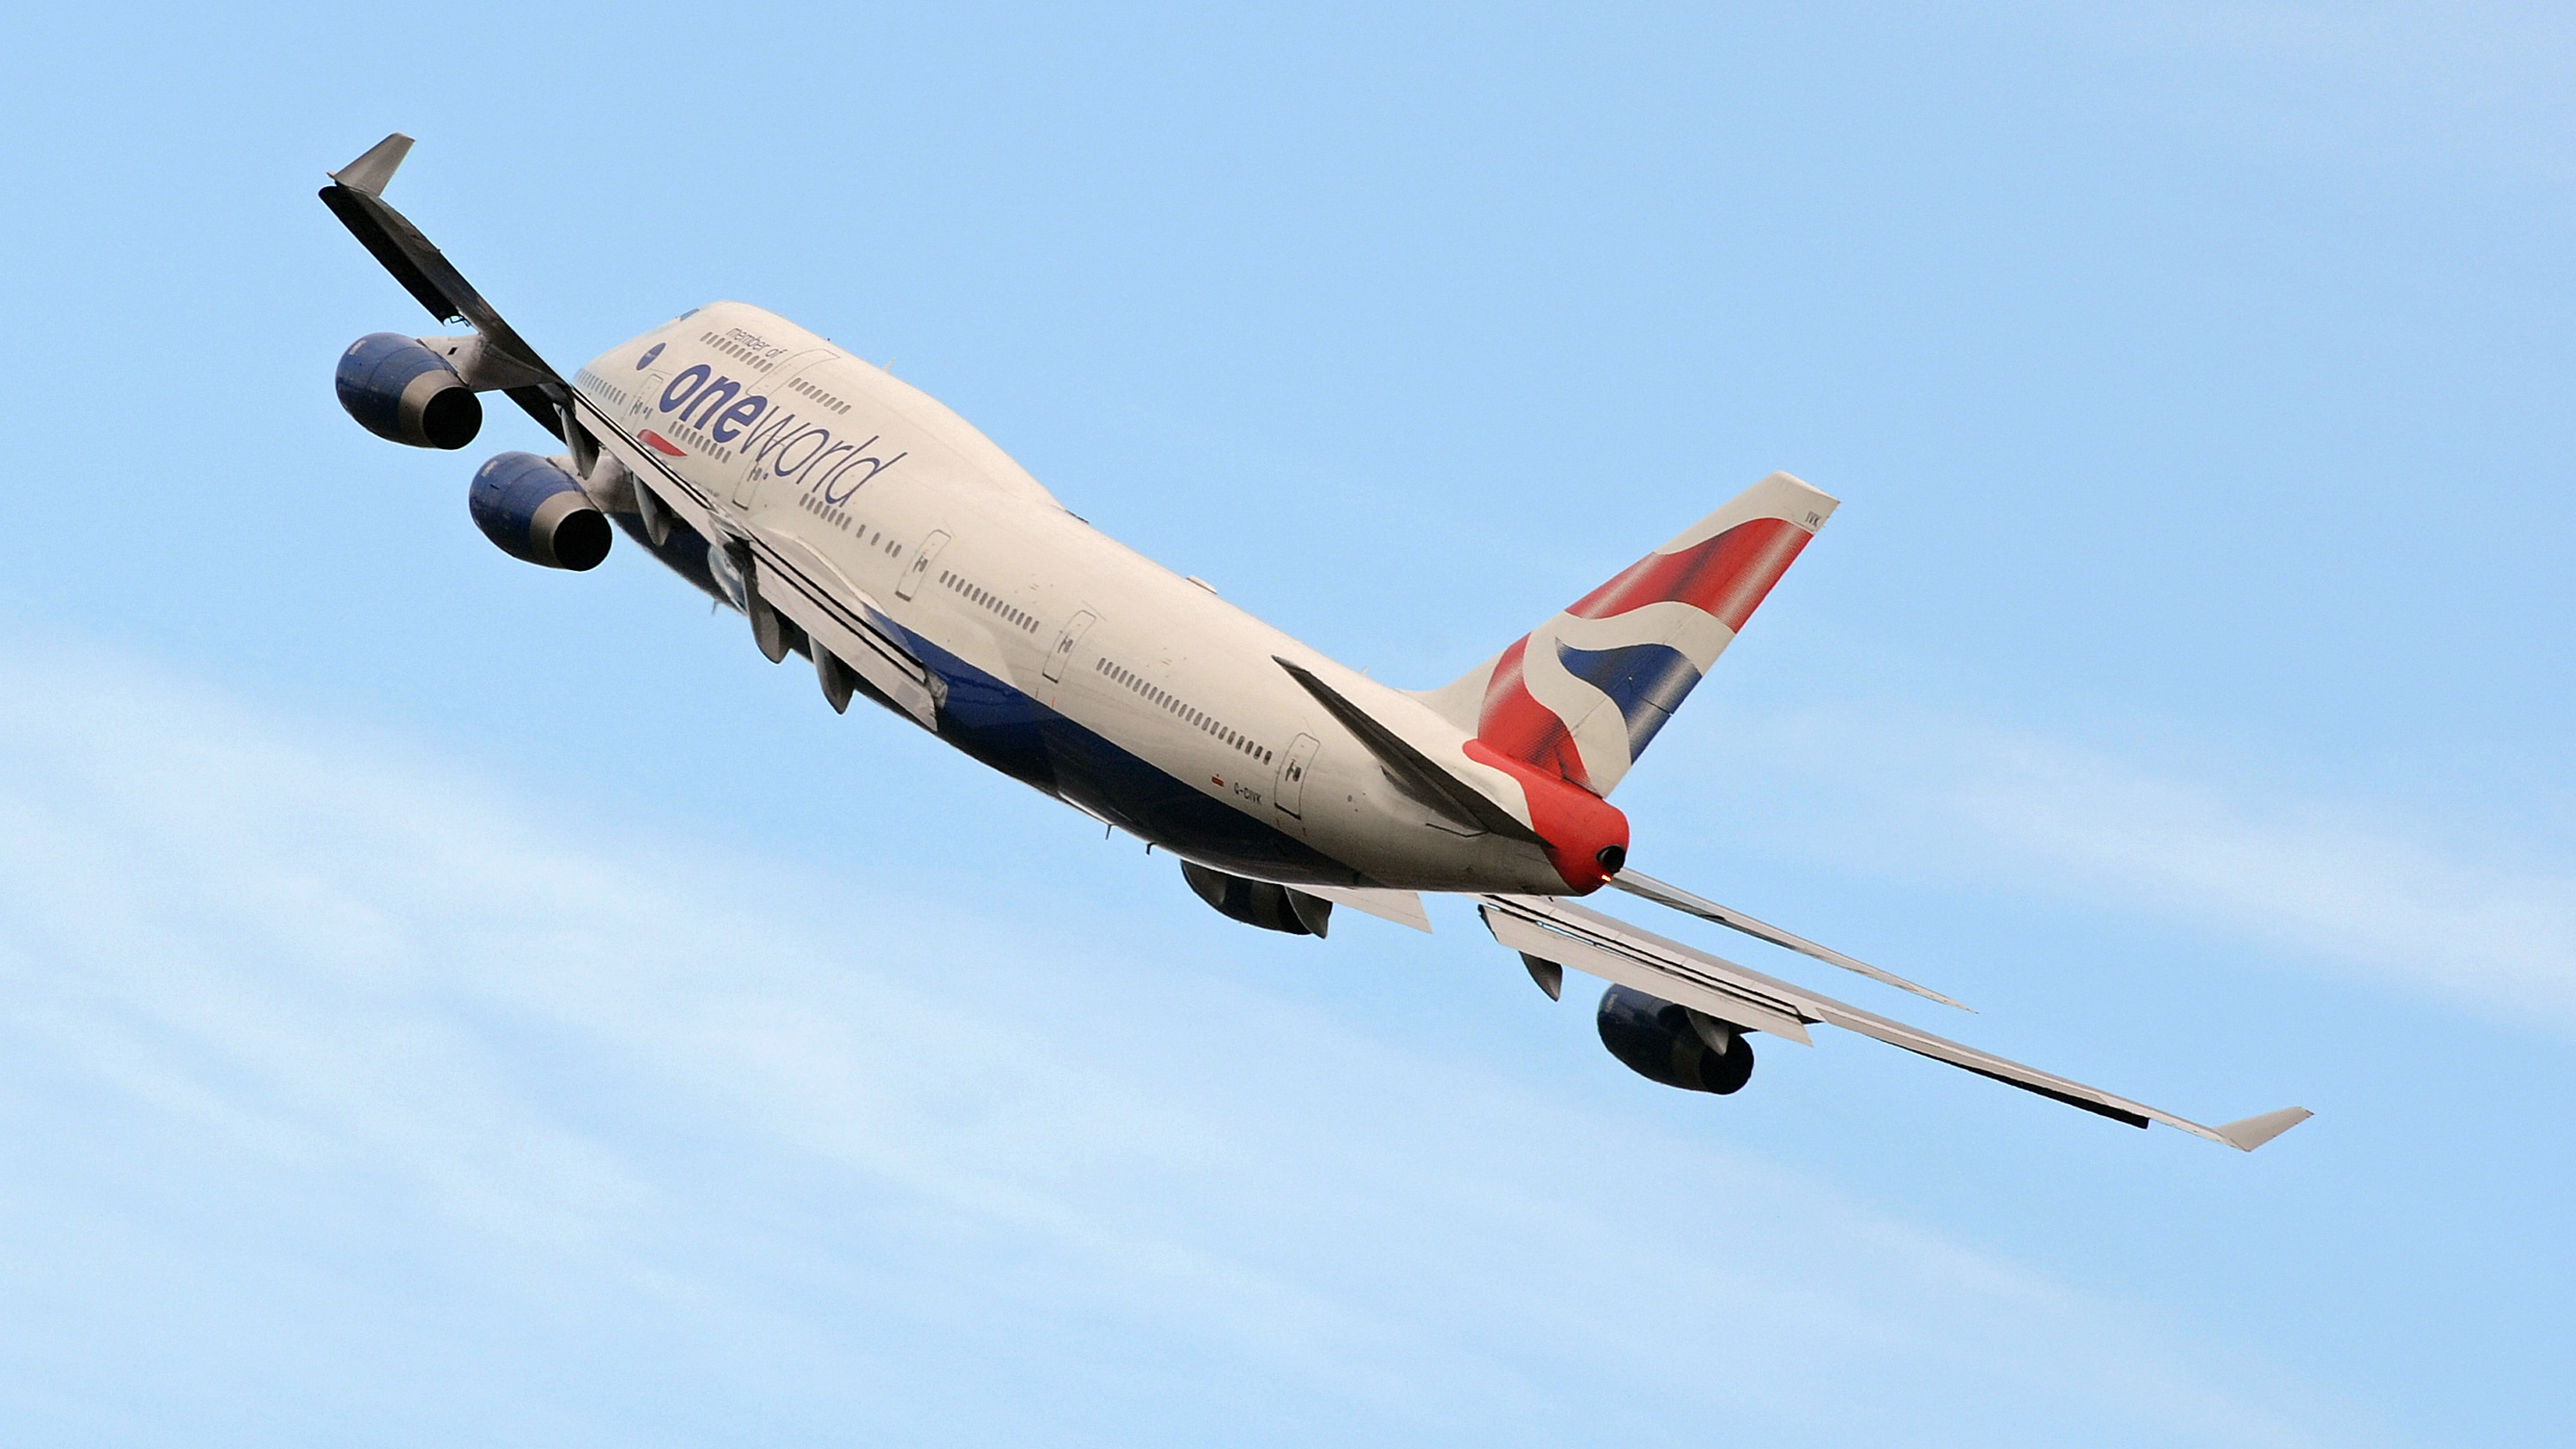 A British Airways Boeing 747 aircraft banks after taking off from Heathrow Airport in west London